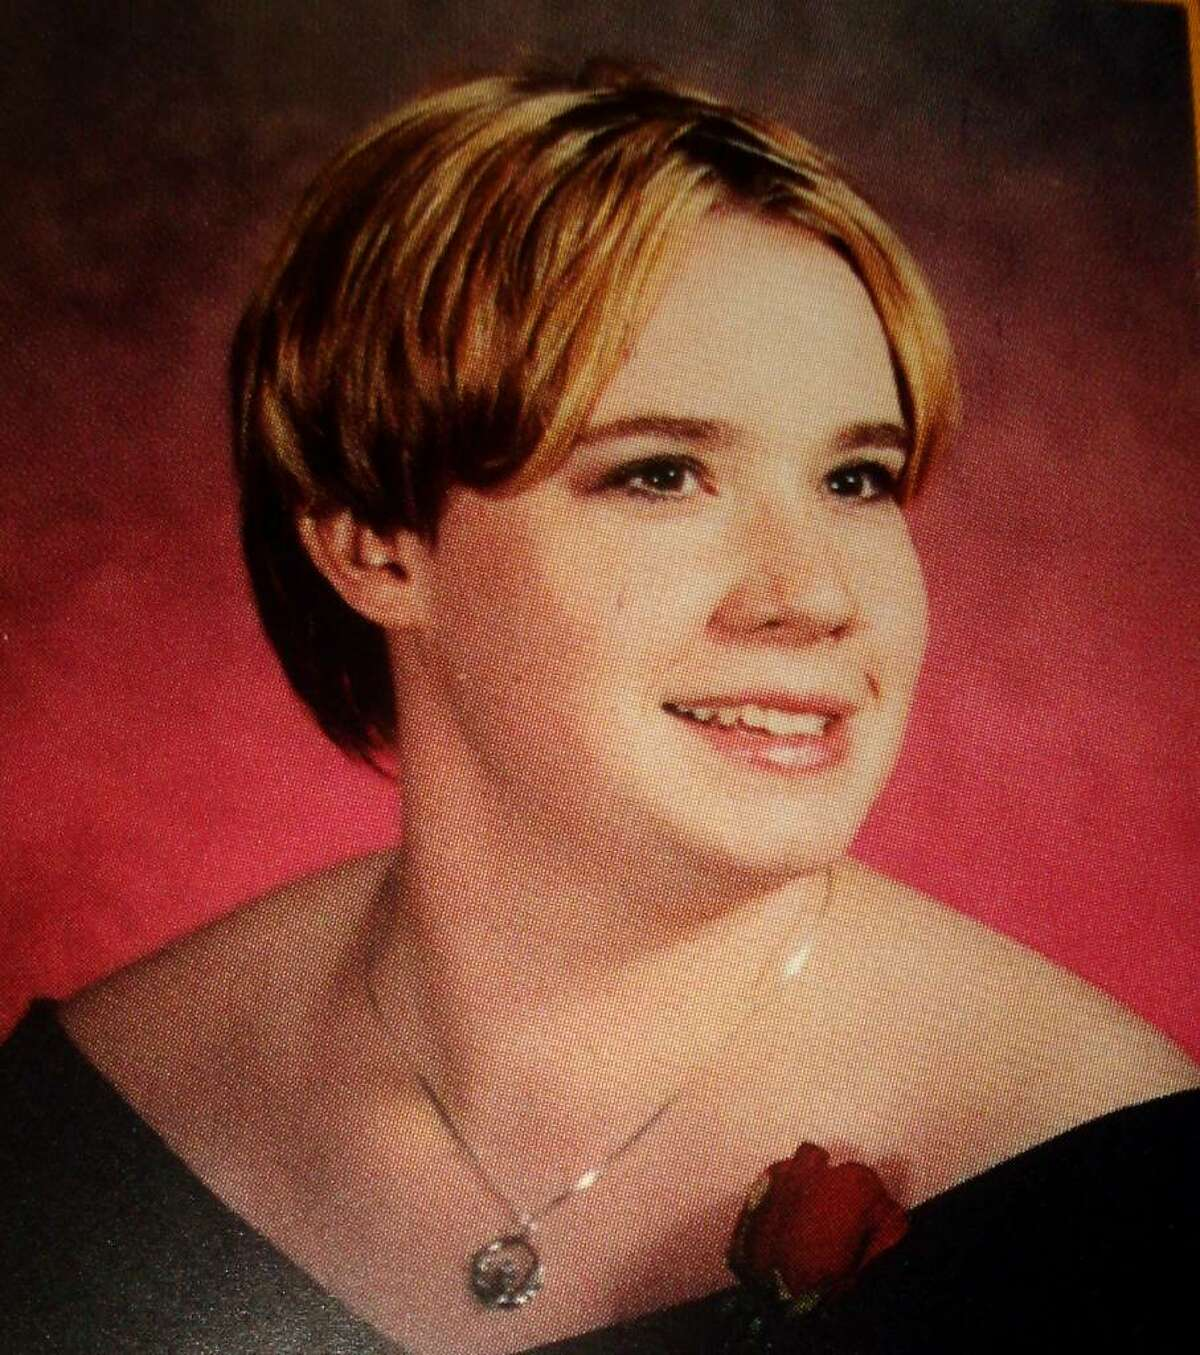 The 2001 Shelton High School yearbook photo of Victoria Hope.